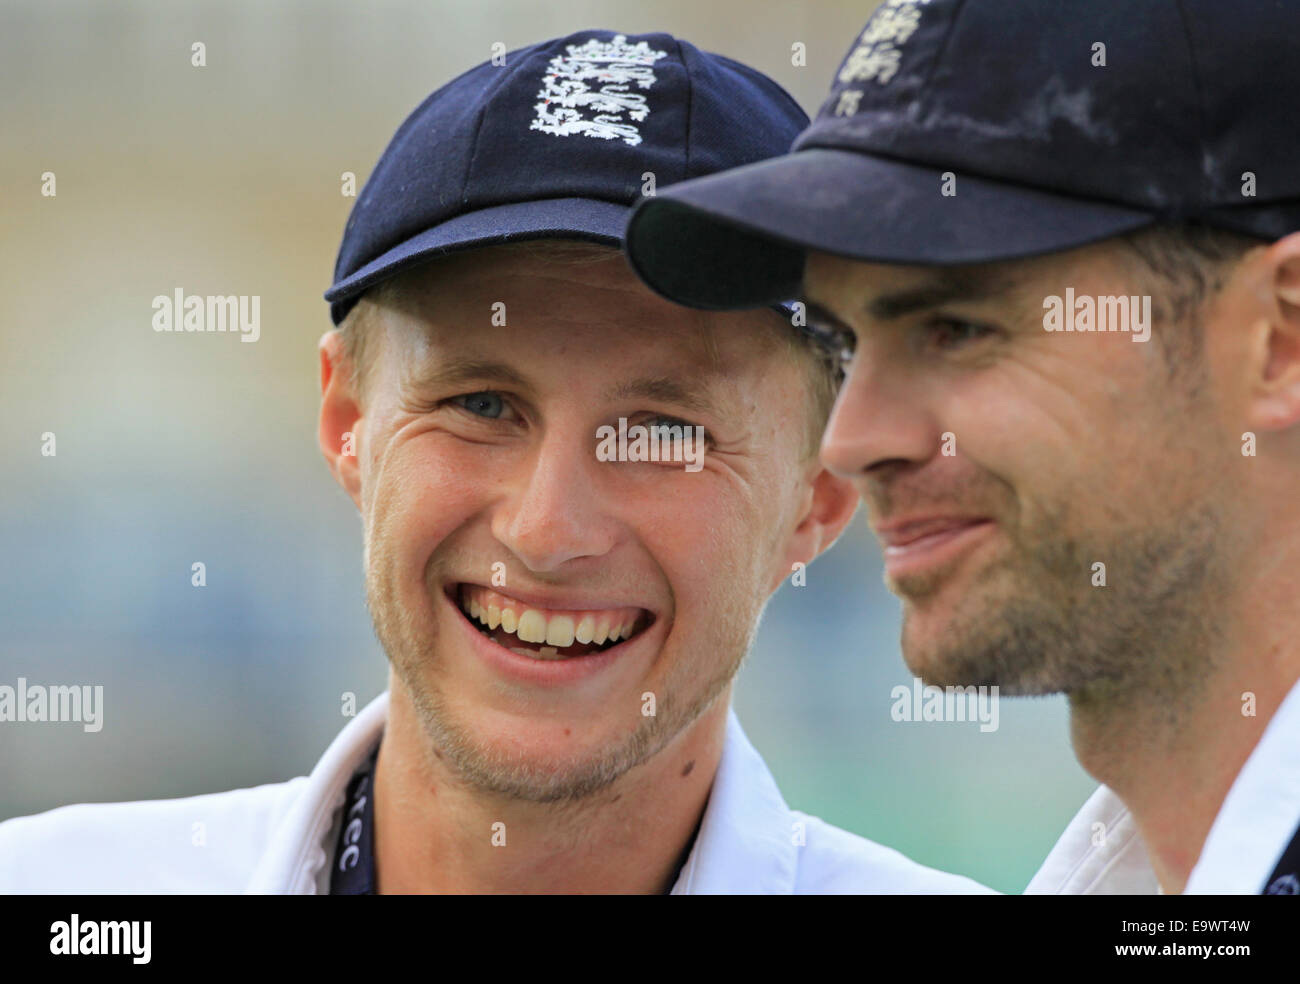 Cricket - Joe Root and James Anderson portrait after England win the Investec Test series against India at The Kia - Stock Image